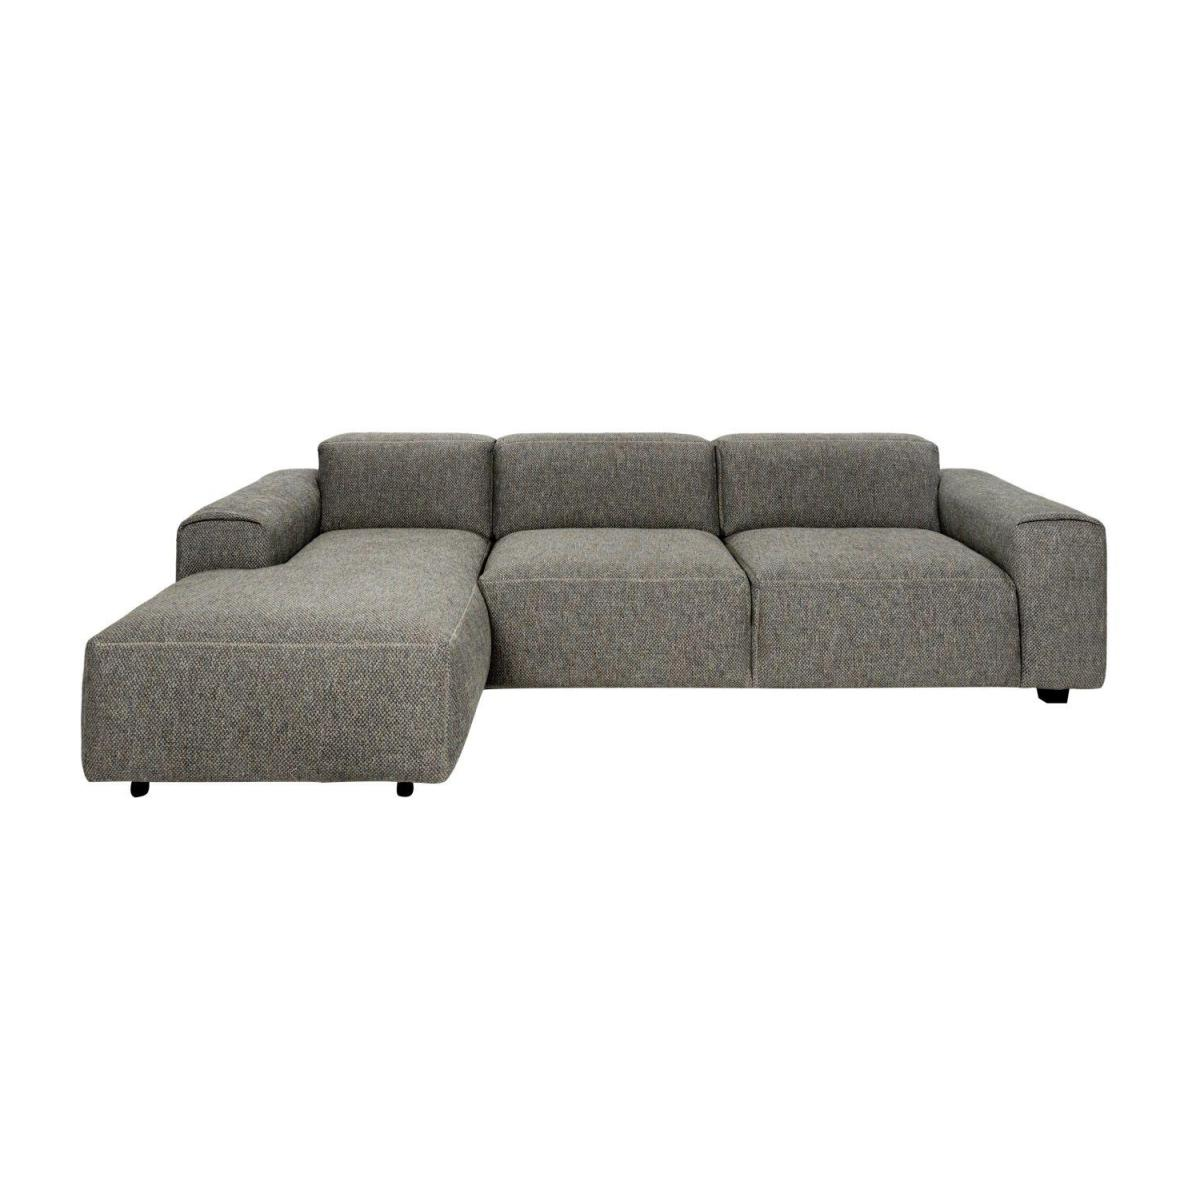 3-Sitzer Sofa mit Chaiselongue links aus Stoff Bellagio night black n°4